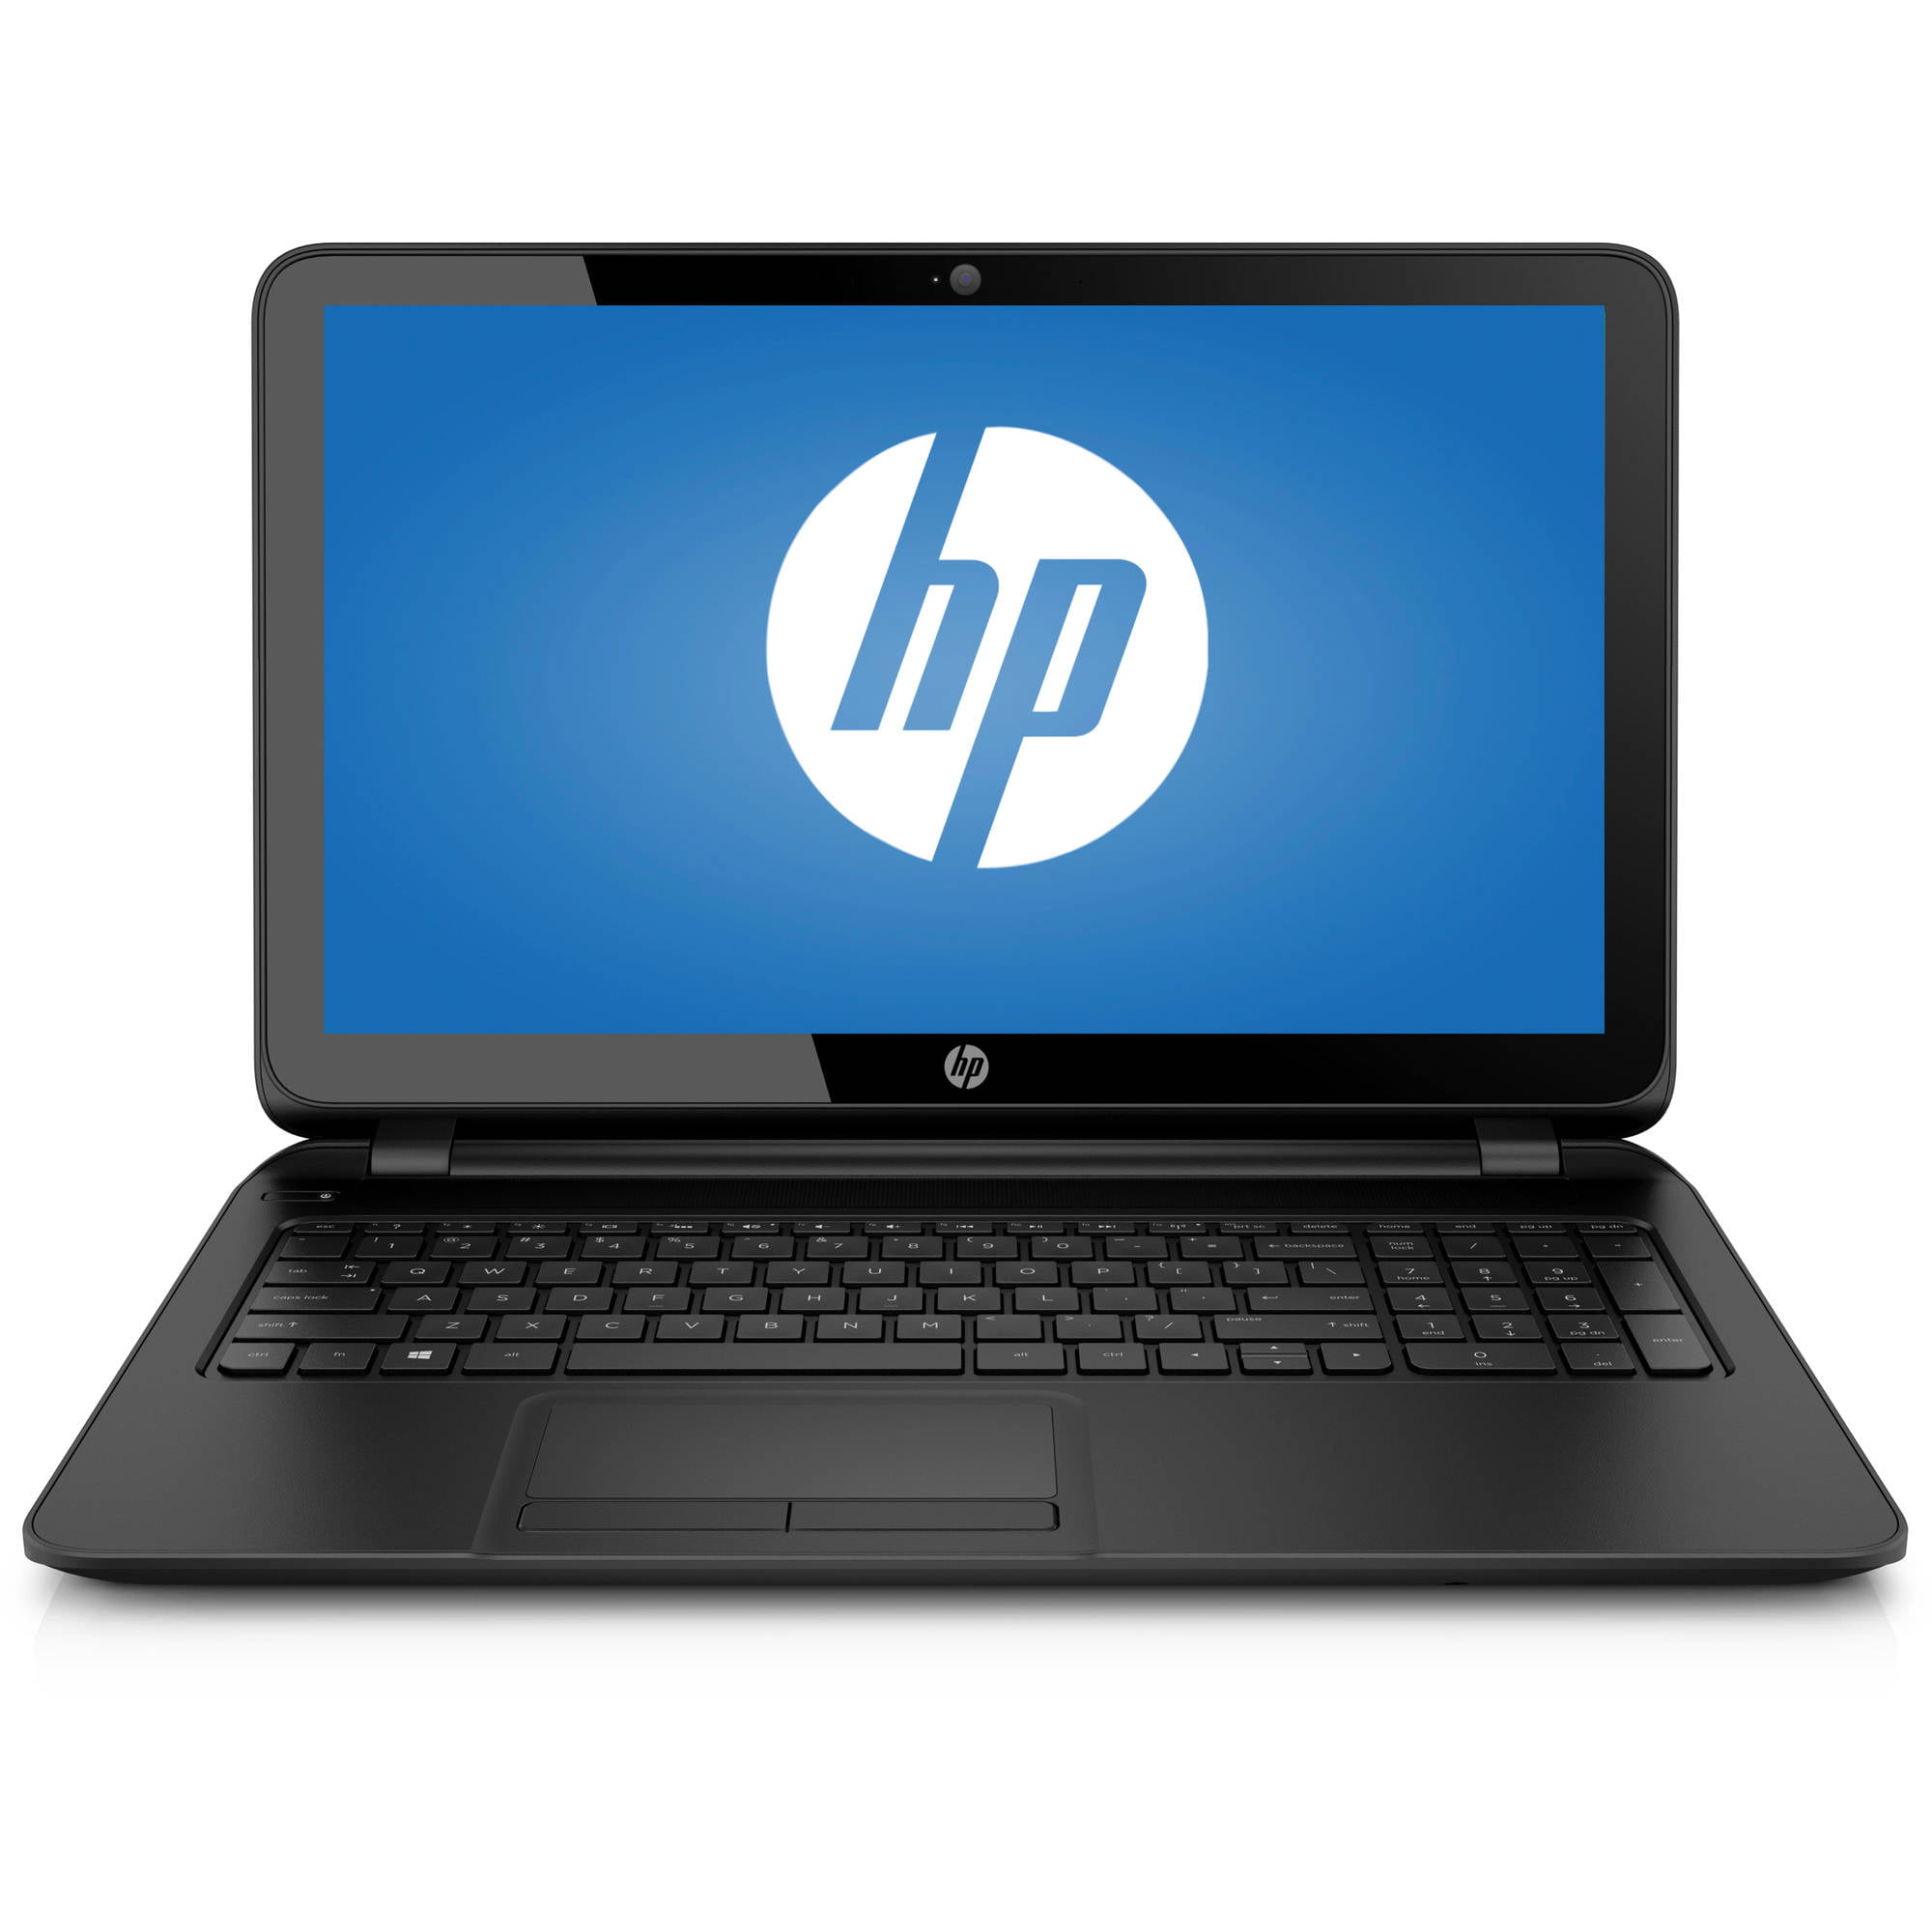 Hp Flyer Red  F272wm Laptop Pc With Intel Pentium Ngb Memory 500gb Hard Drive And Windows 10 Home Walmart Com